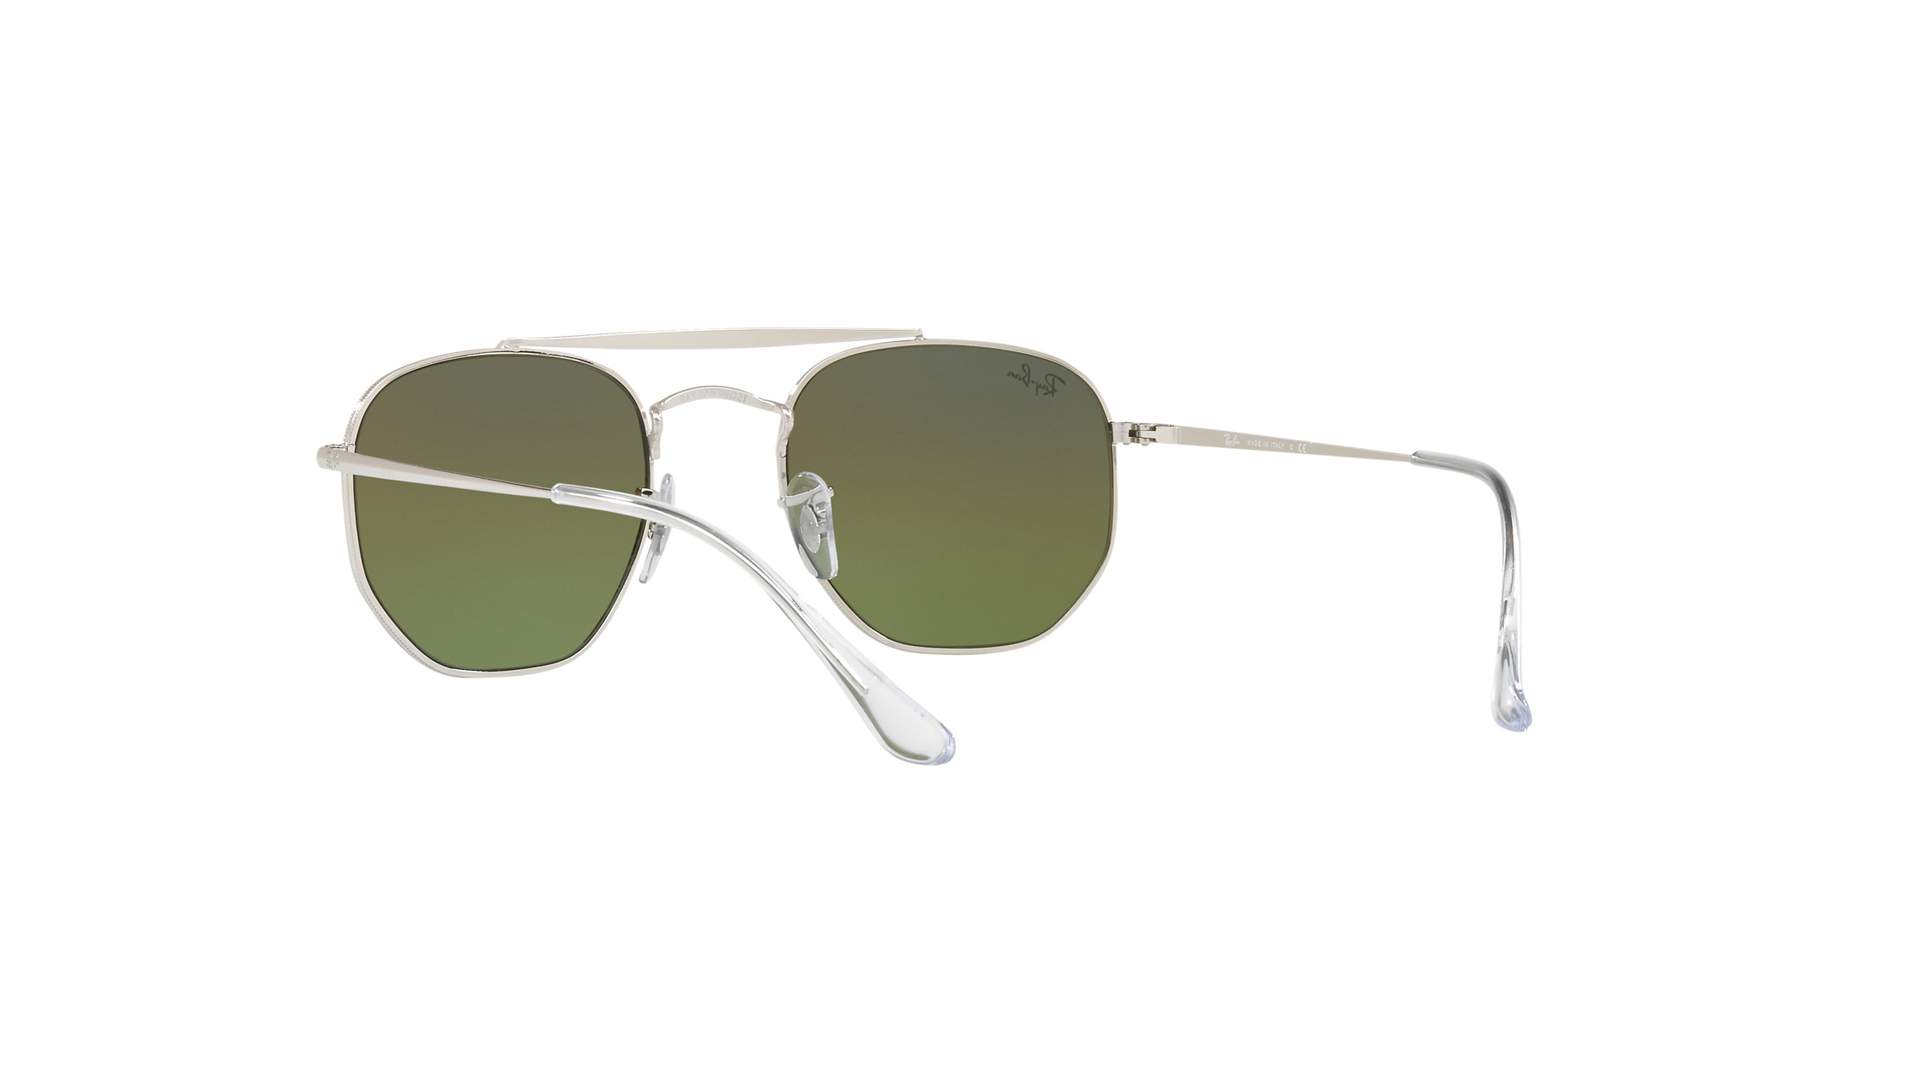 f6f783a6211 Sunglasses Ray-Ban Marshal Silver RB3648 003 I2 51-21 Medium Gradient Mirror